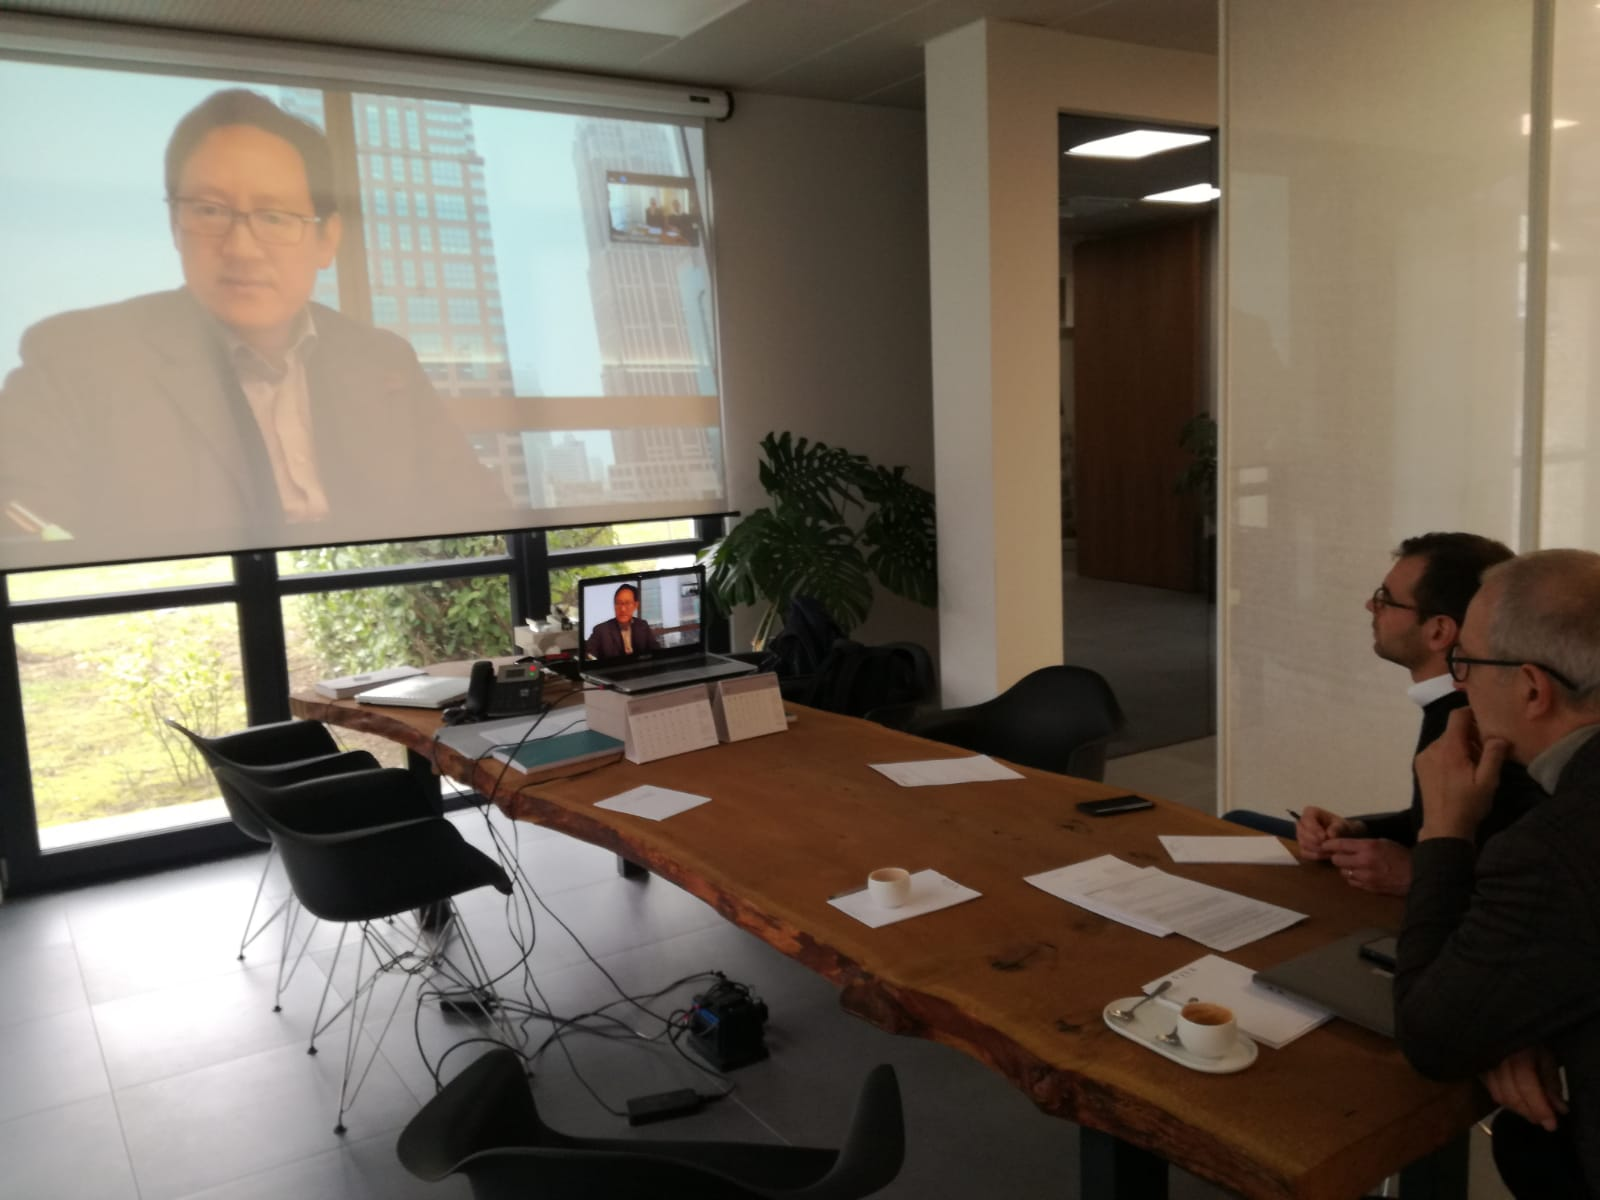 Viva accordo con CasaJolie in video conferenza